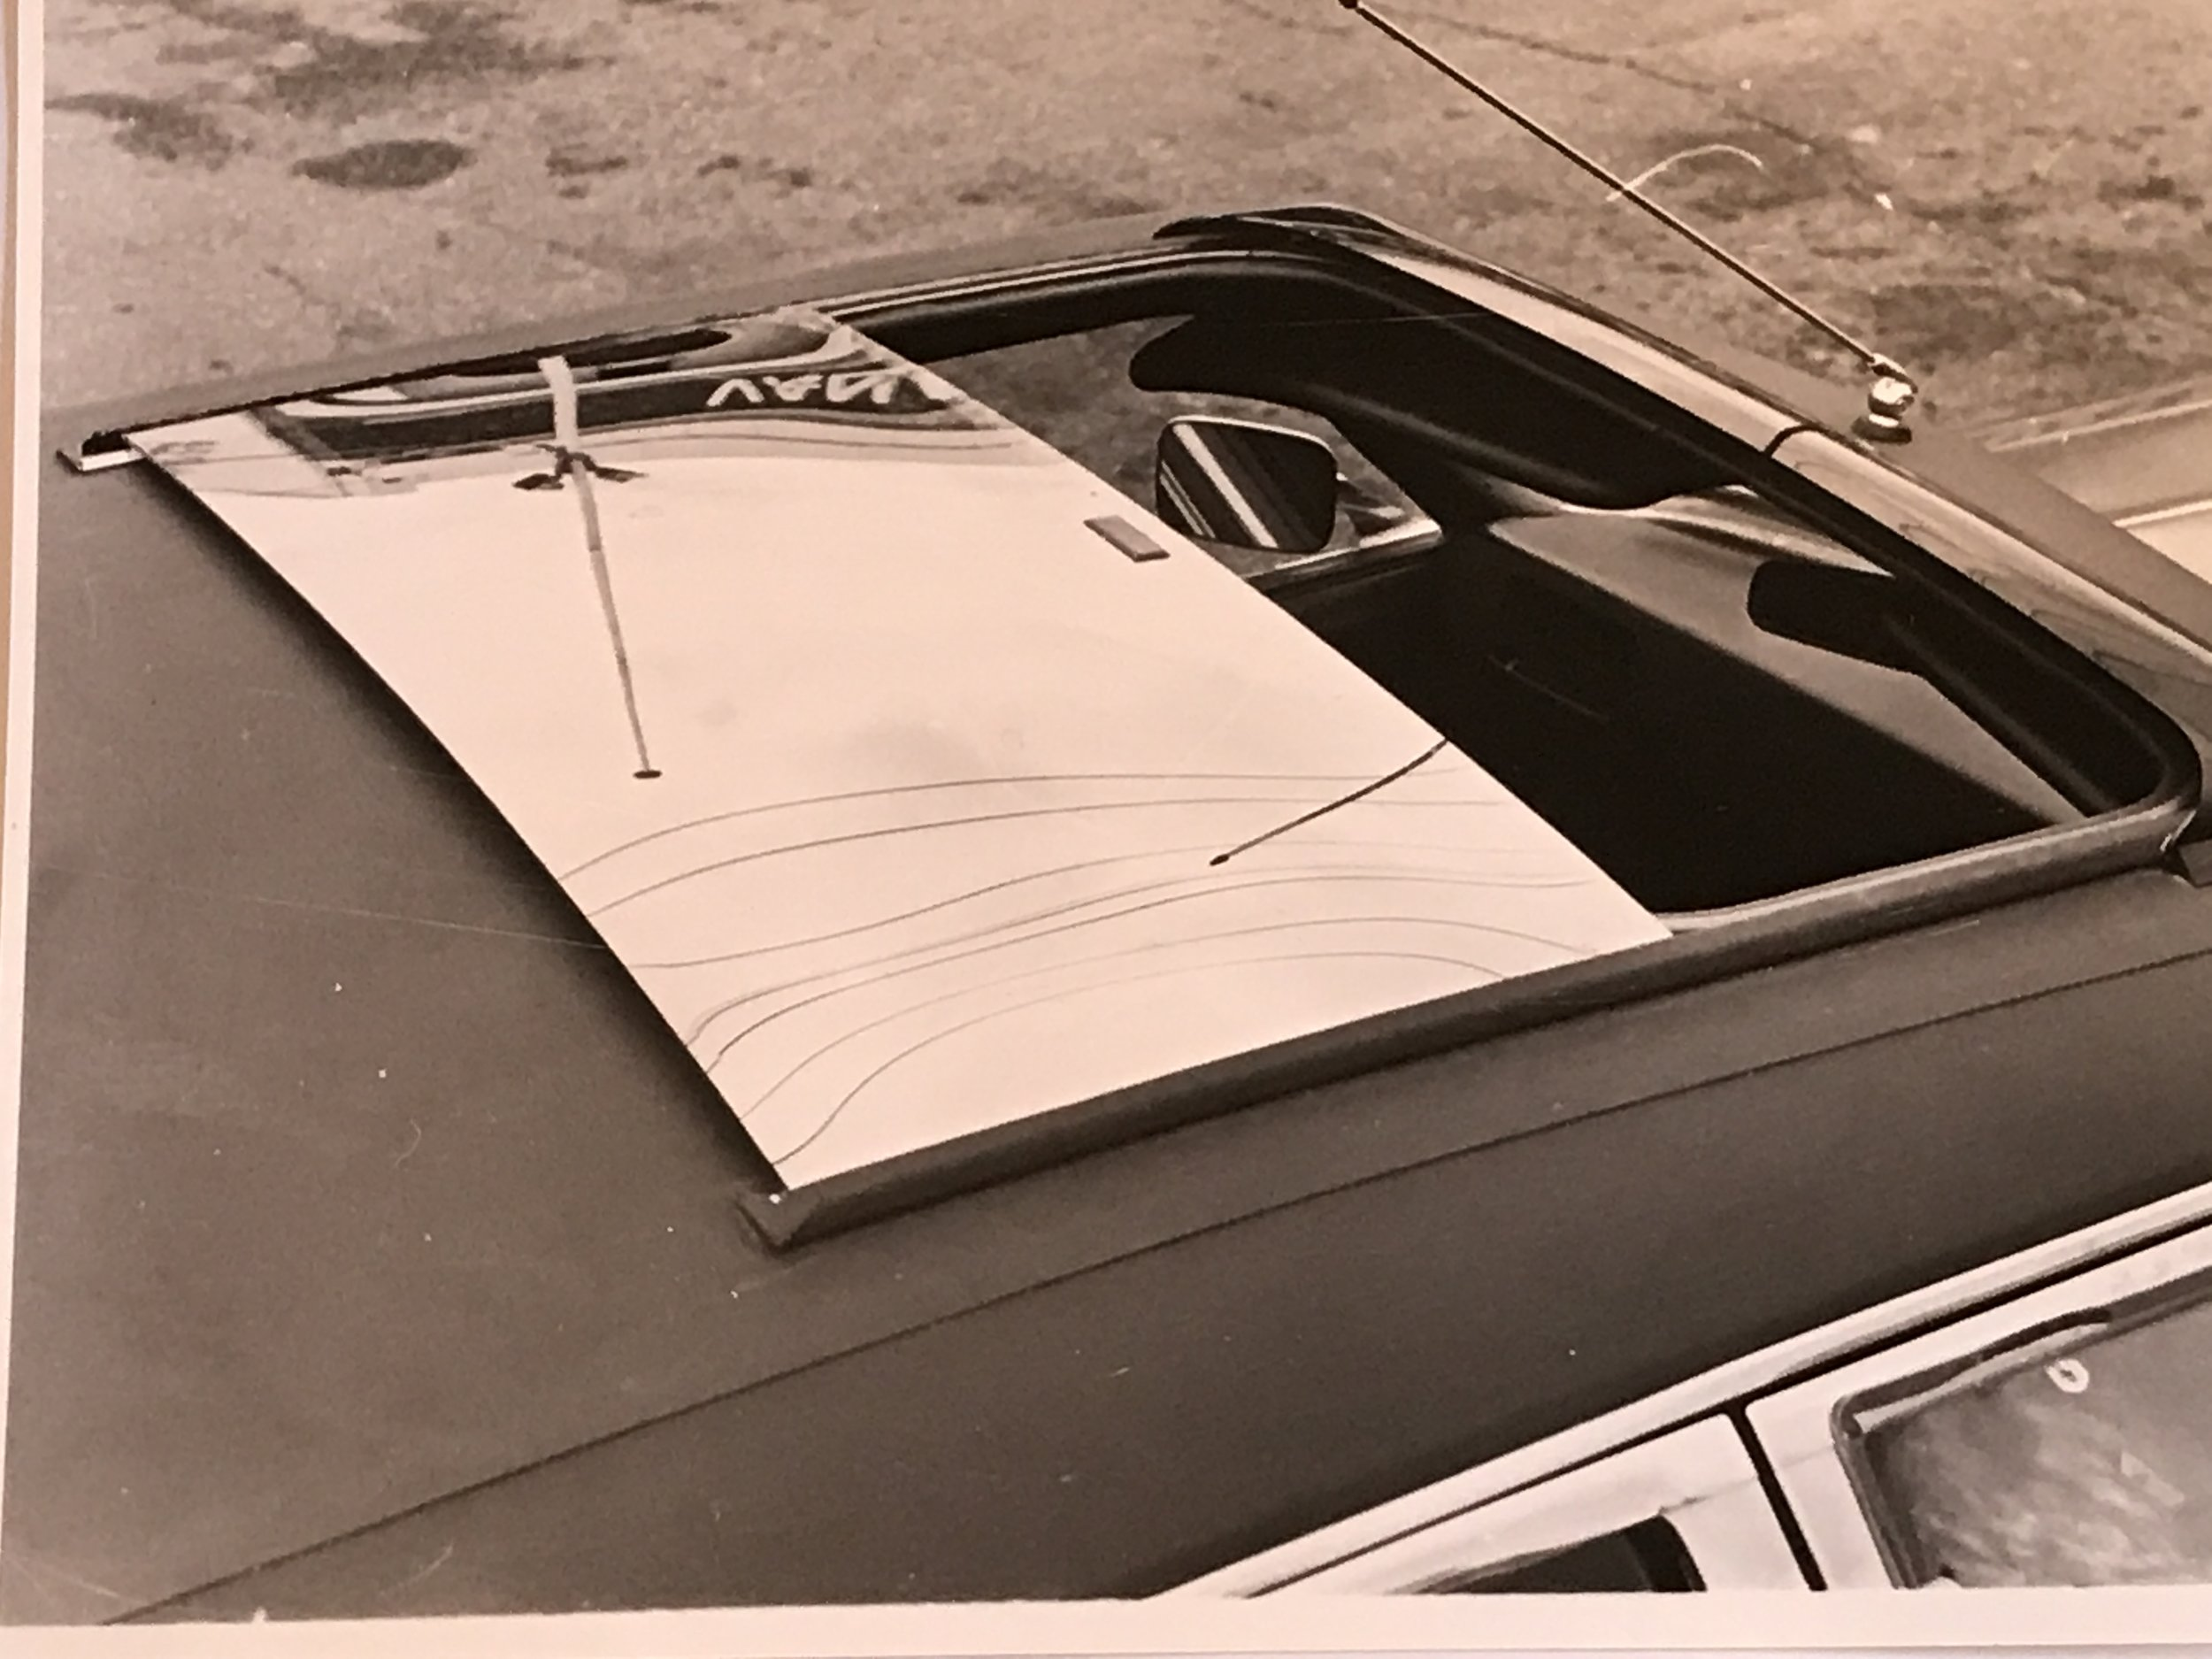 Air International Sliding Sunroof 1970s